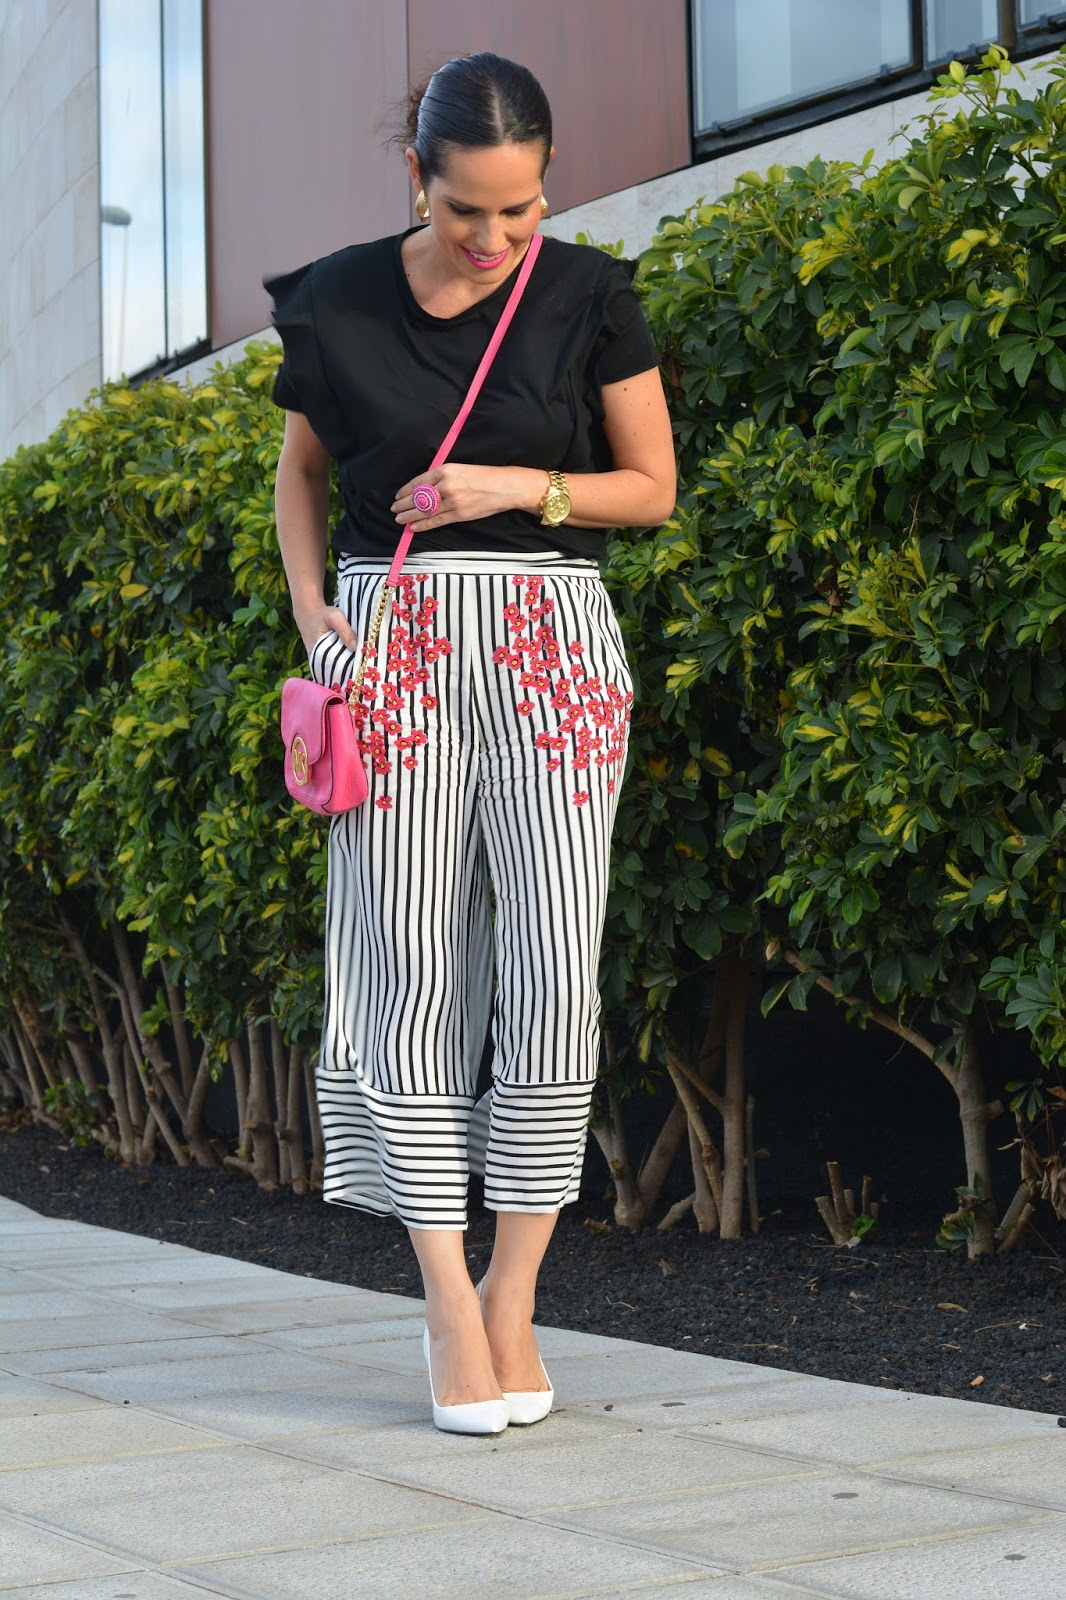 zara-outfit-culottes-streetstyle-rosa-rayas